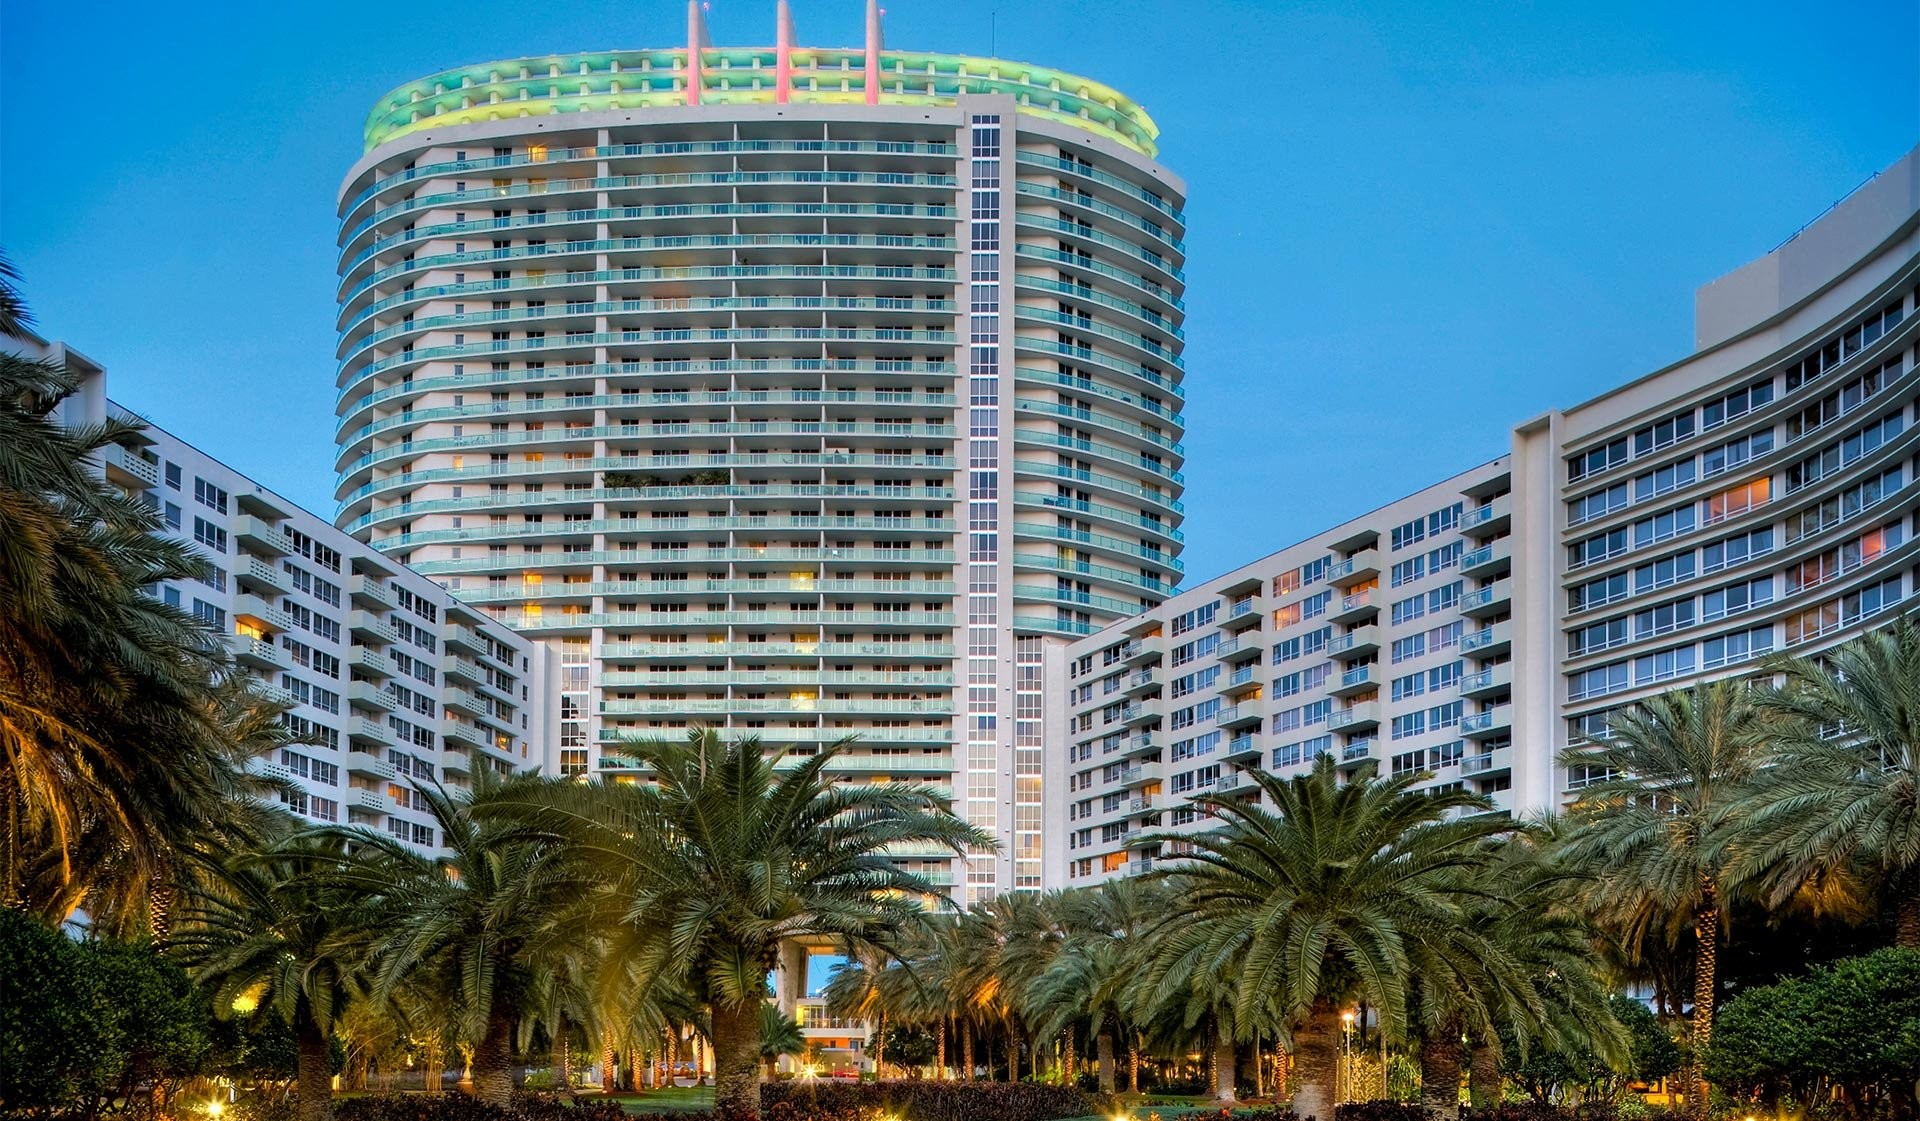 Flamingo South Beach North and South Towers rental